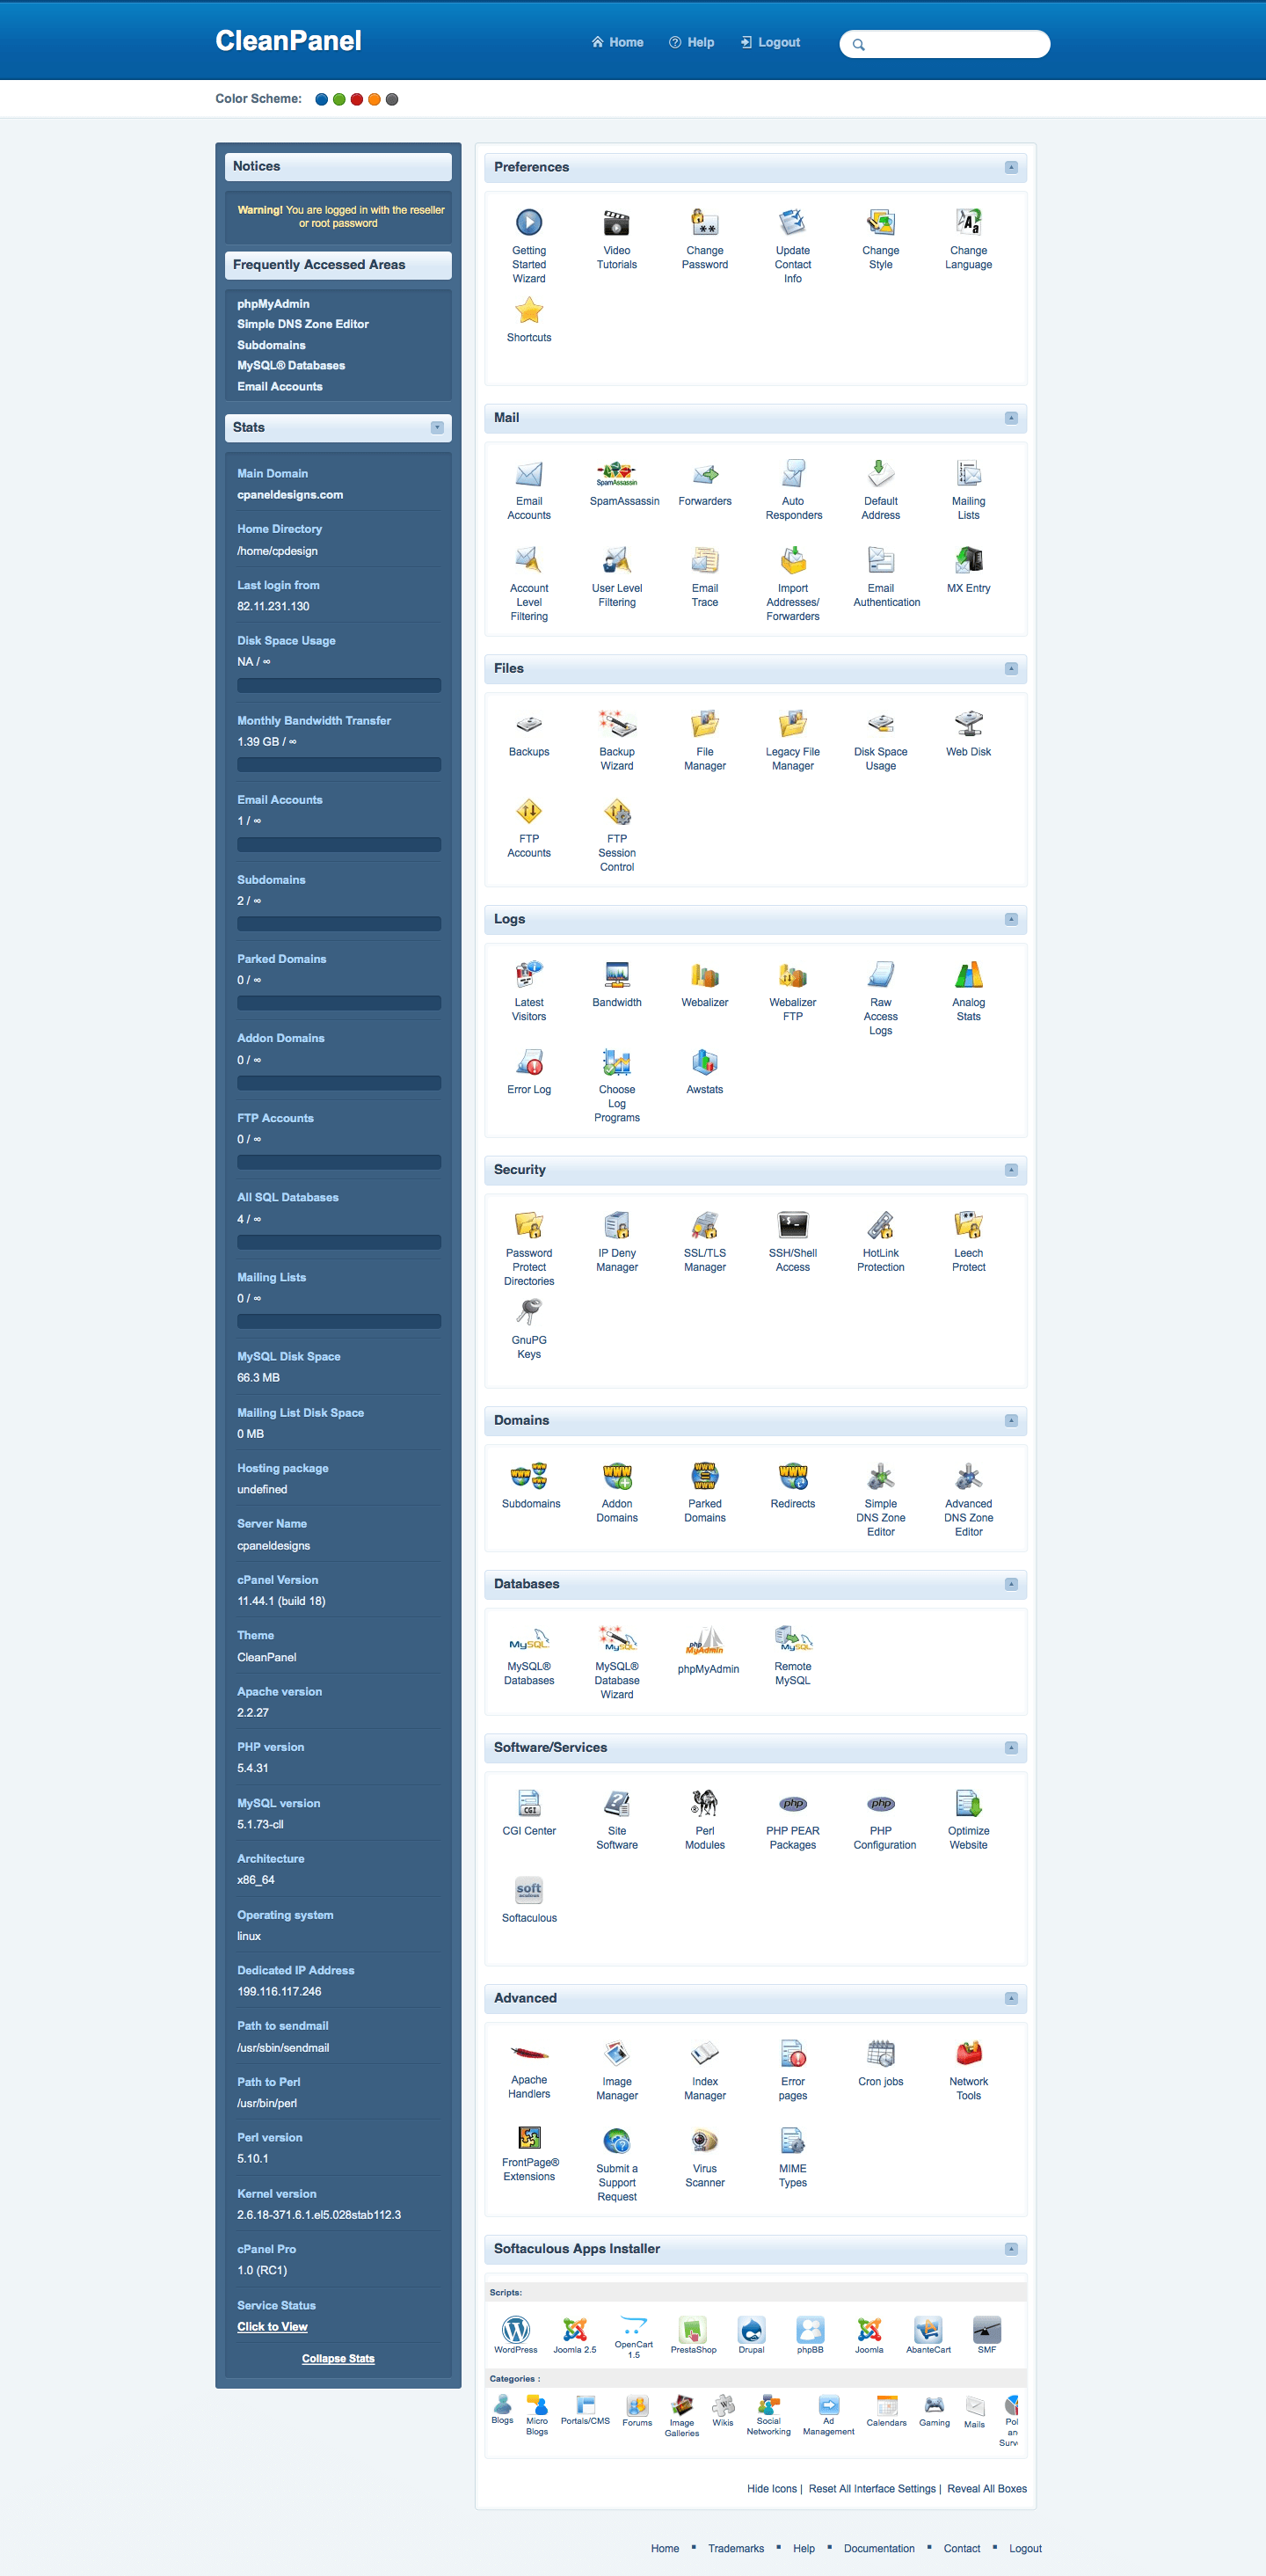 cPanelDesigns - High Quality cPanel Themes, Responsive & Mobile Friendly